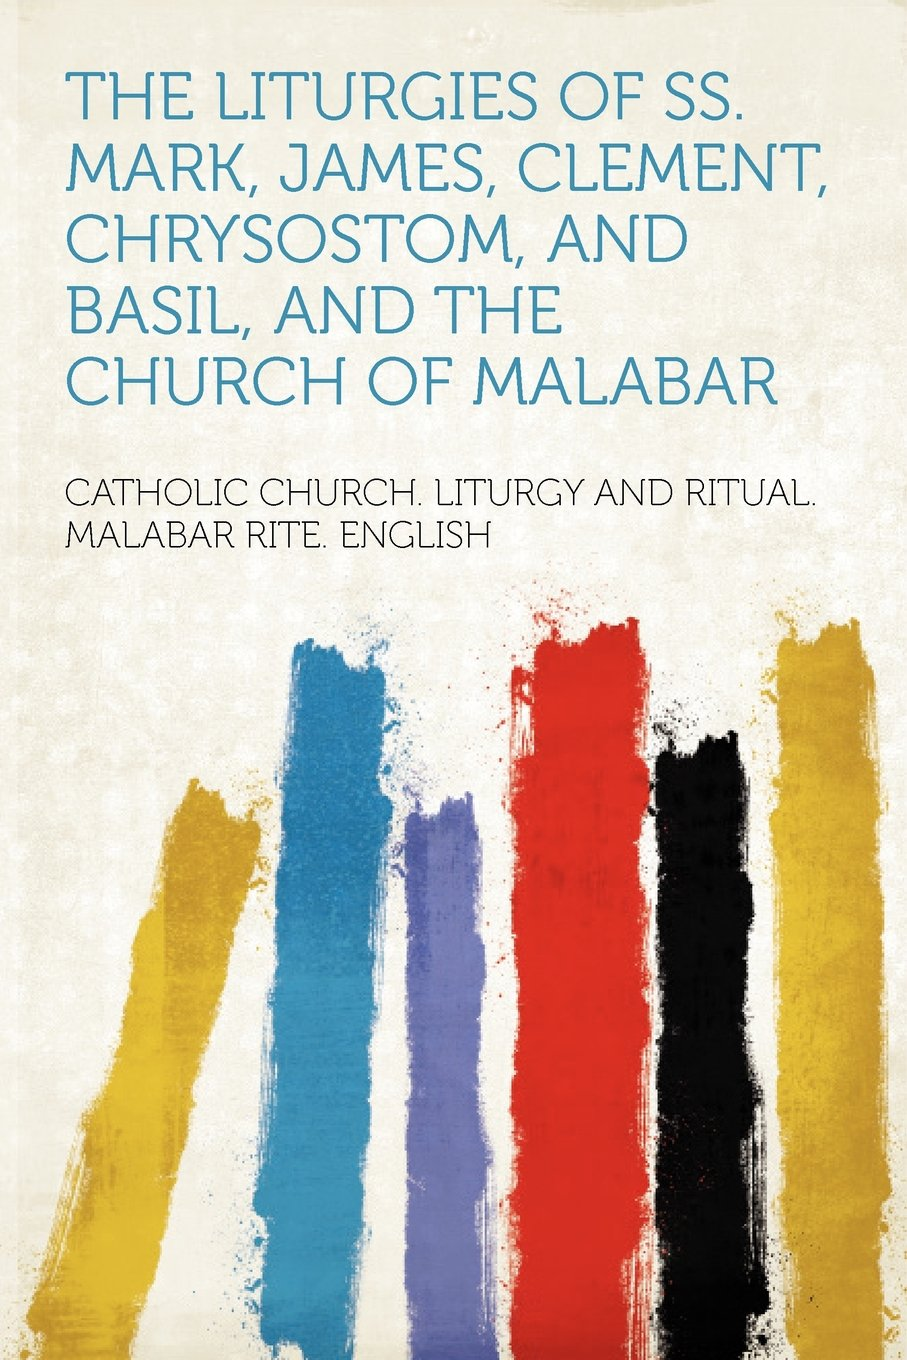 Download The Liturgies of SS. Mark, James, Clement, Chrysostom, and Basil, and the Church of Malabar PDF